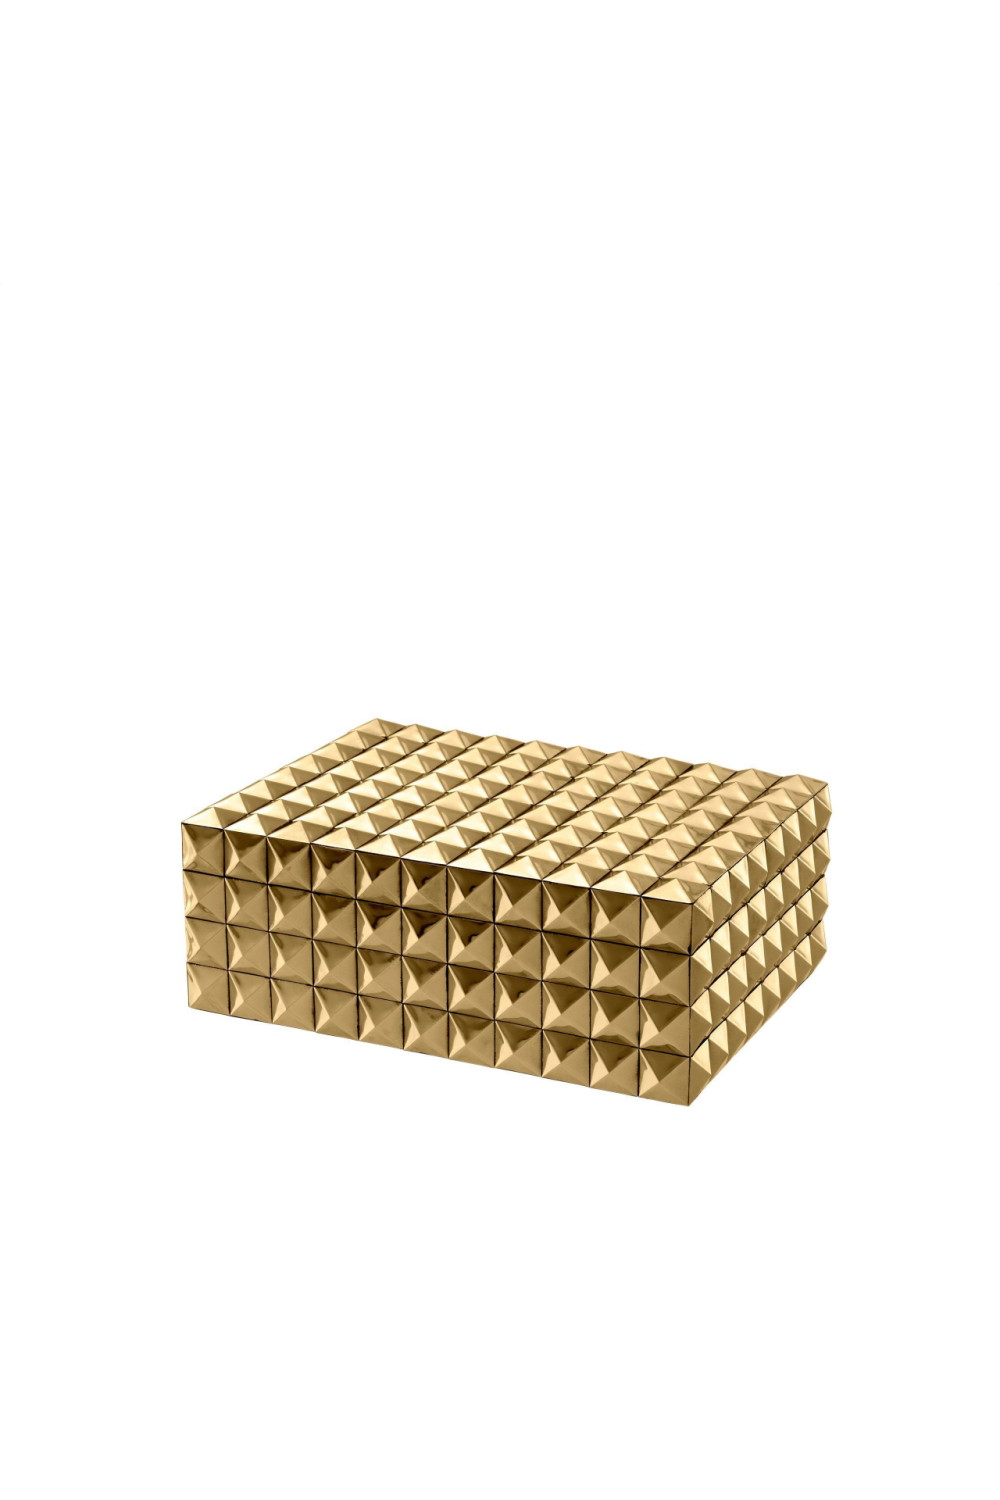 Gold Storage Box | Eichholtz Vivienne S